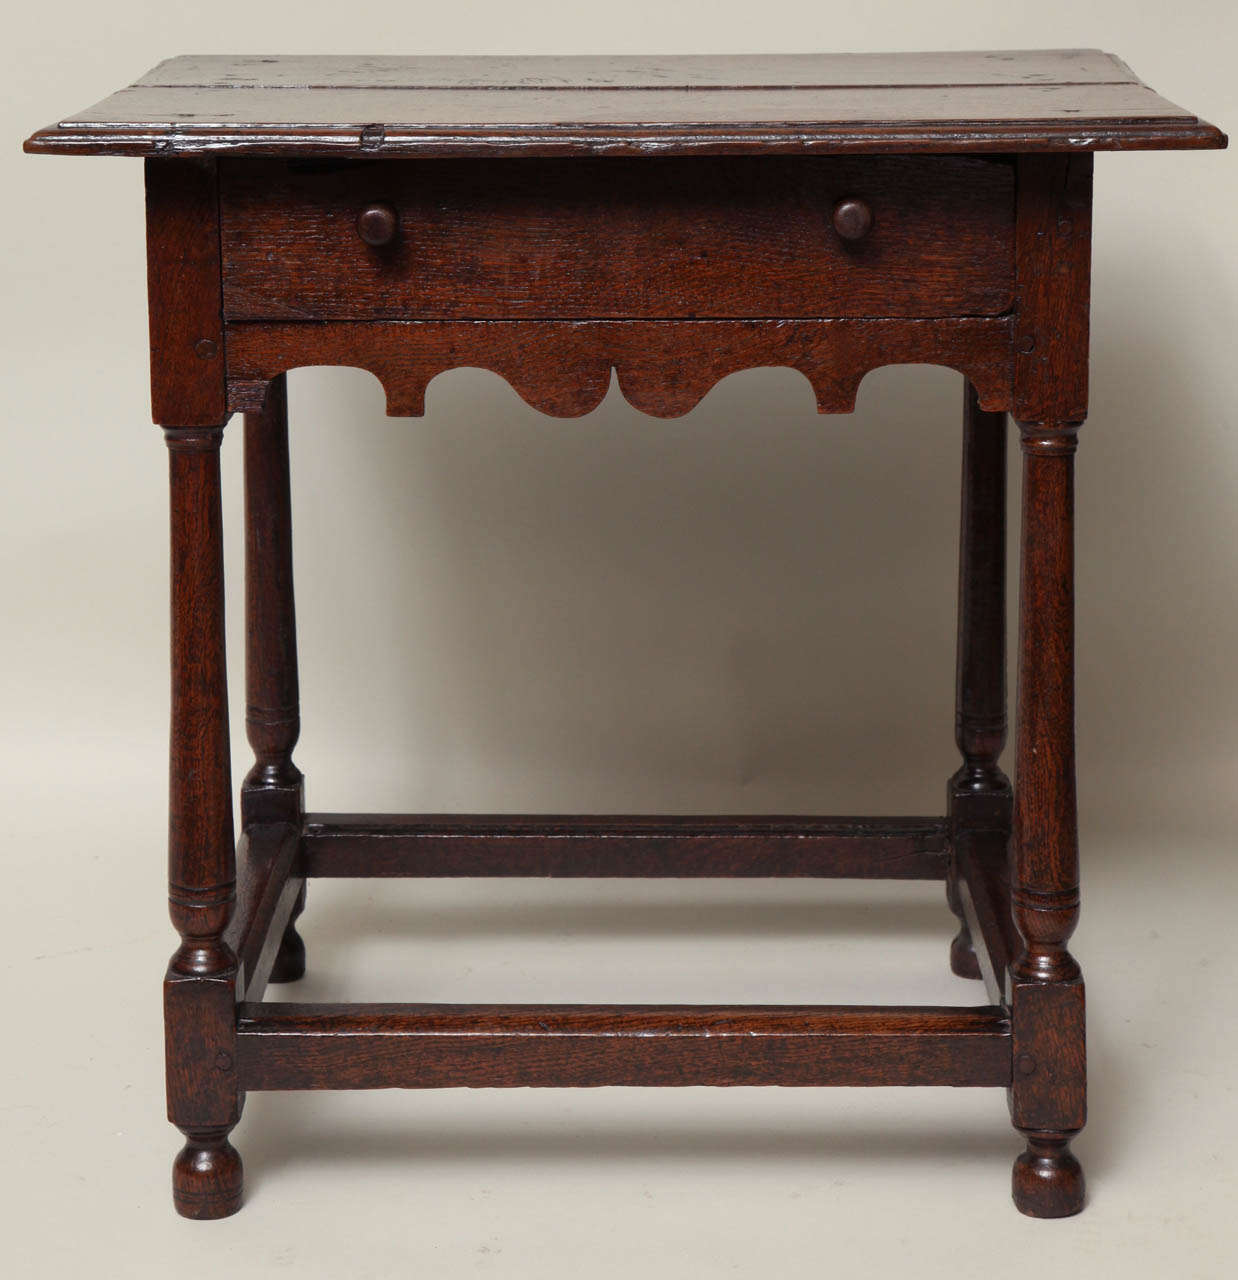 Early 18th Century English Oak Table For Sale at 1stdibs